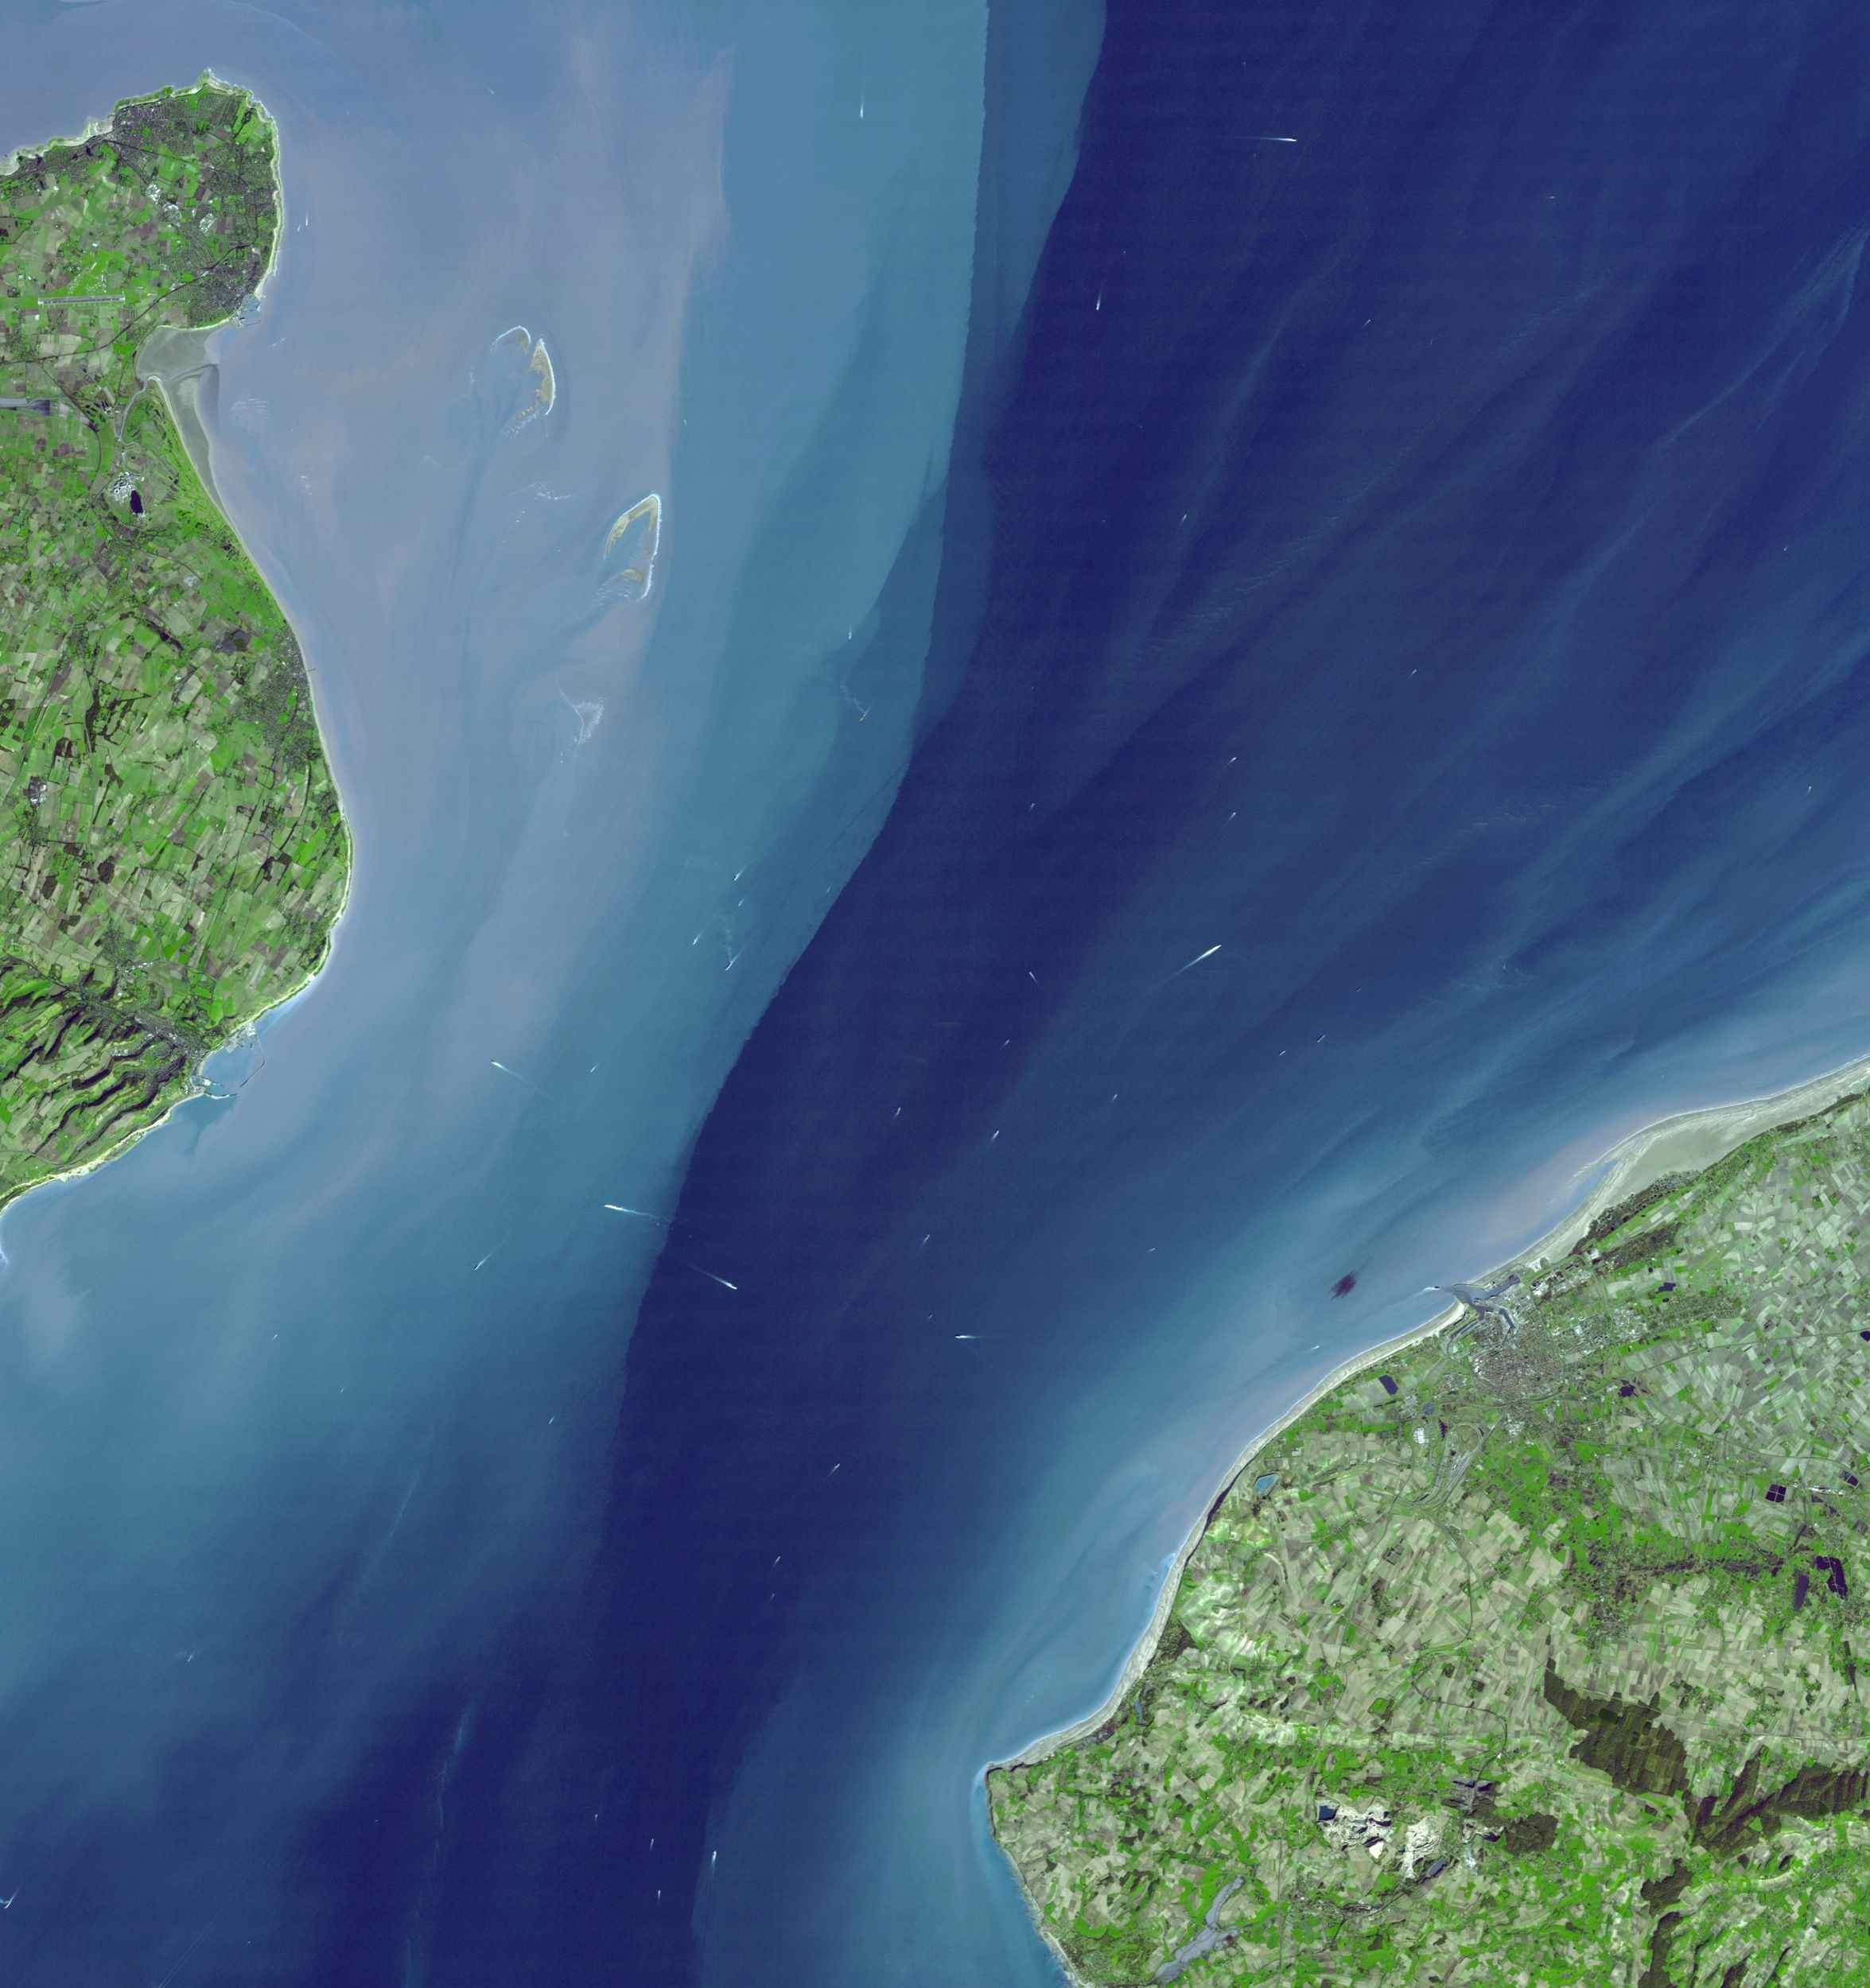 The Channel Tunnel is a 50.5 km-long rail tunnel beneath the English Channel at the Straits of Dover. It connects Dover, Kent in England with Calais, northern France. This image was acquired by NASA's Terra spacecraft.